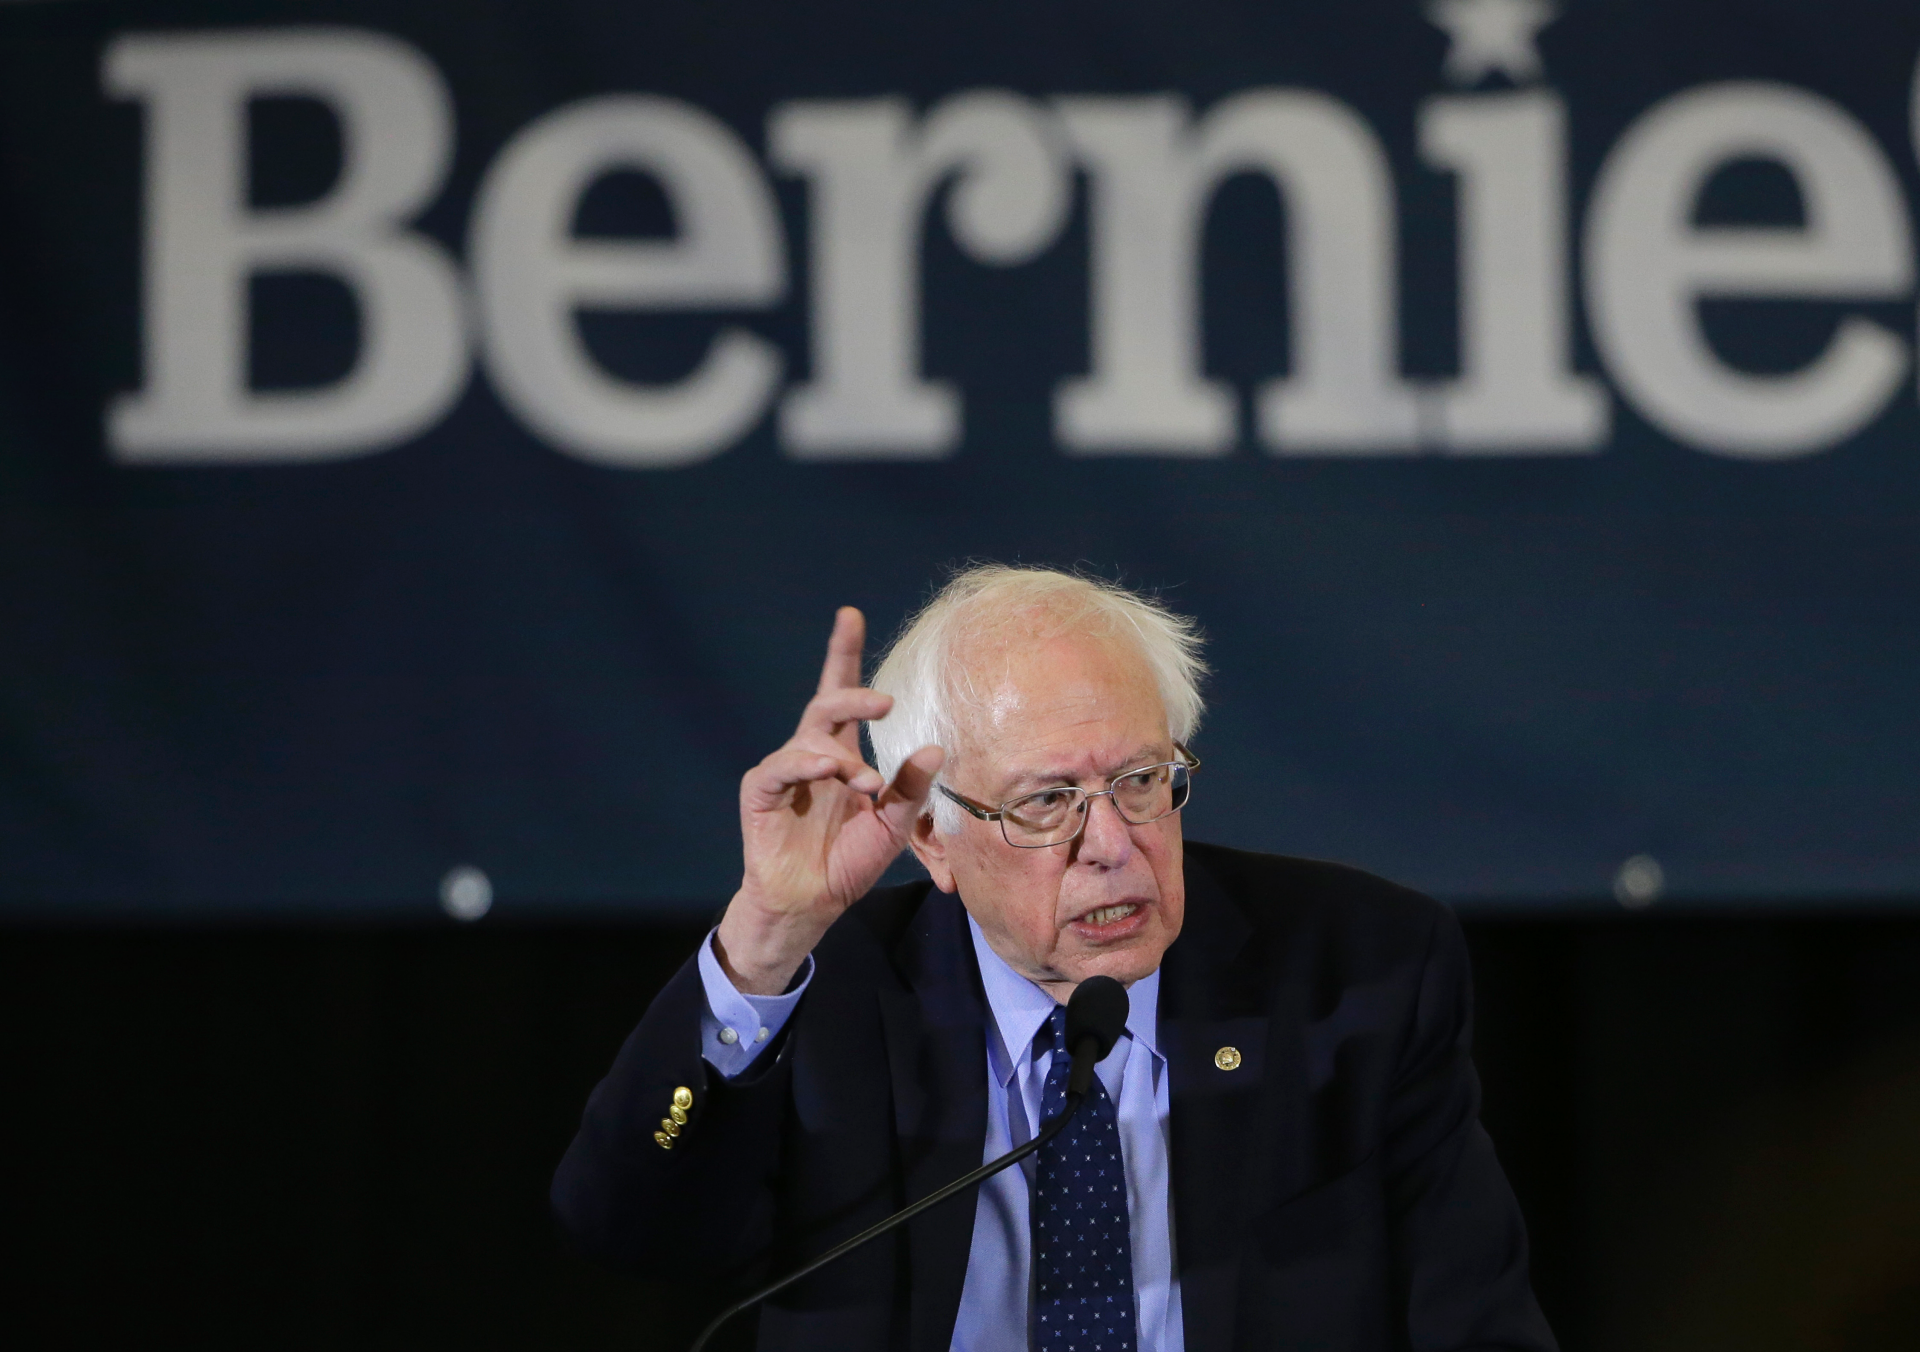 Westlake Legal Group ContentBroker_contentid-d193fa7dadc2486b82f2a0fedd2901f8 Bernie Sanders touts working-class message at Pittsburgh rally Samuel Chamberlain fox-news/us/us-regions/northeast/pennsylvania fox-news/politics/elections/democrats fox-news/politics/elections/campaigning fox-news/politics/2020-presidential-election fox-news/person/bernie-sanders fox news fnc/politics fnc article 2ebe1cfb-842c-5368-ab43-187fc54a1a80